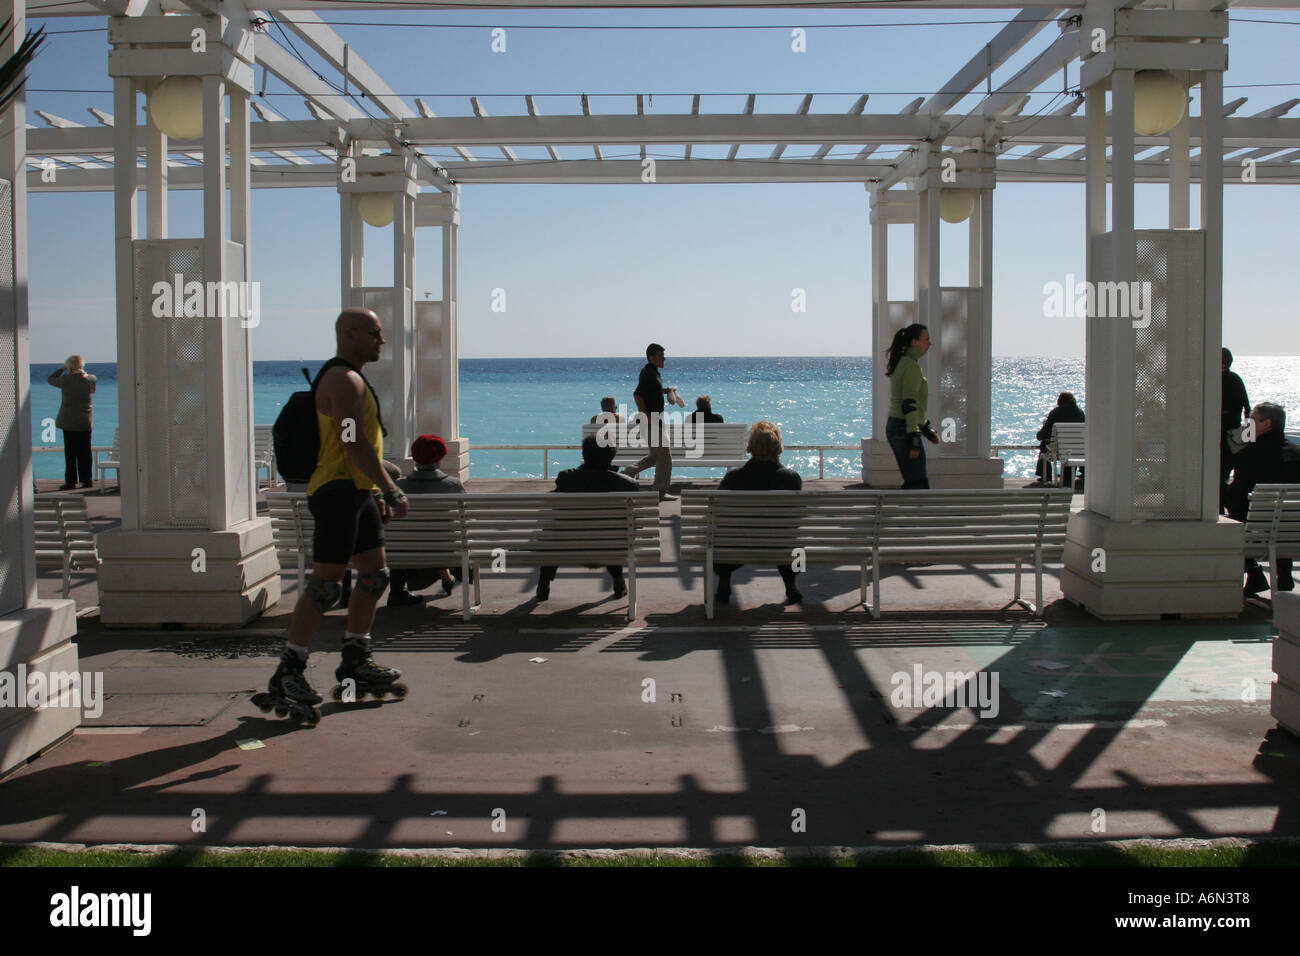 roller skater activity on the promenade des anglais, nice, cote d'azur, France people sitting on benches watching Stock Photo